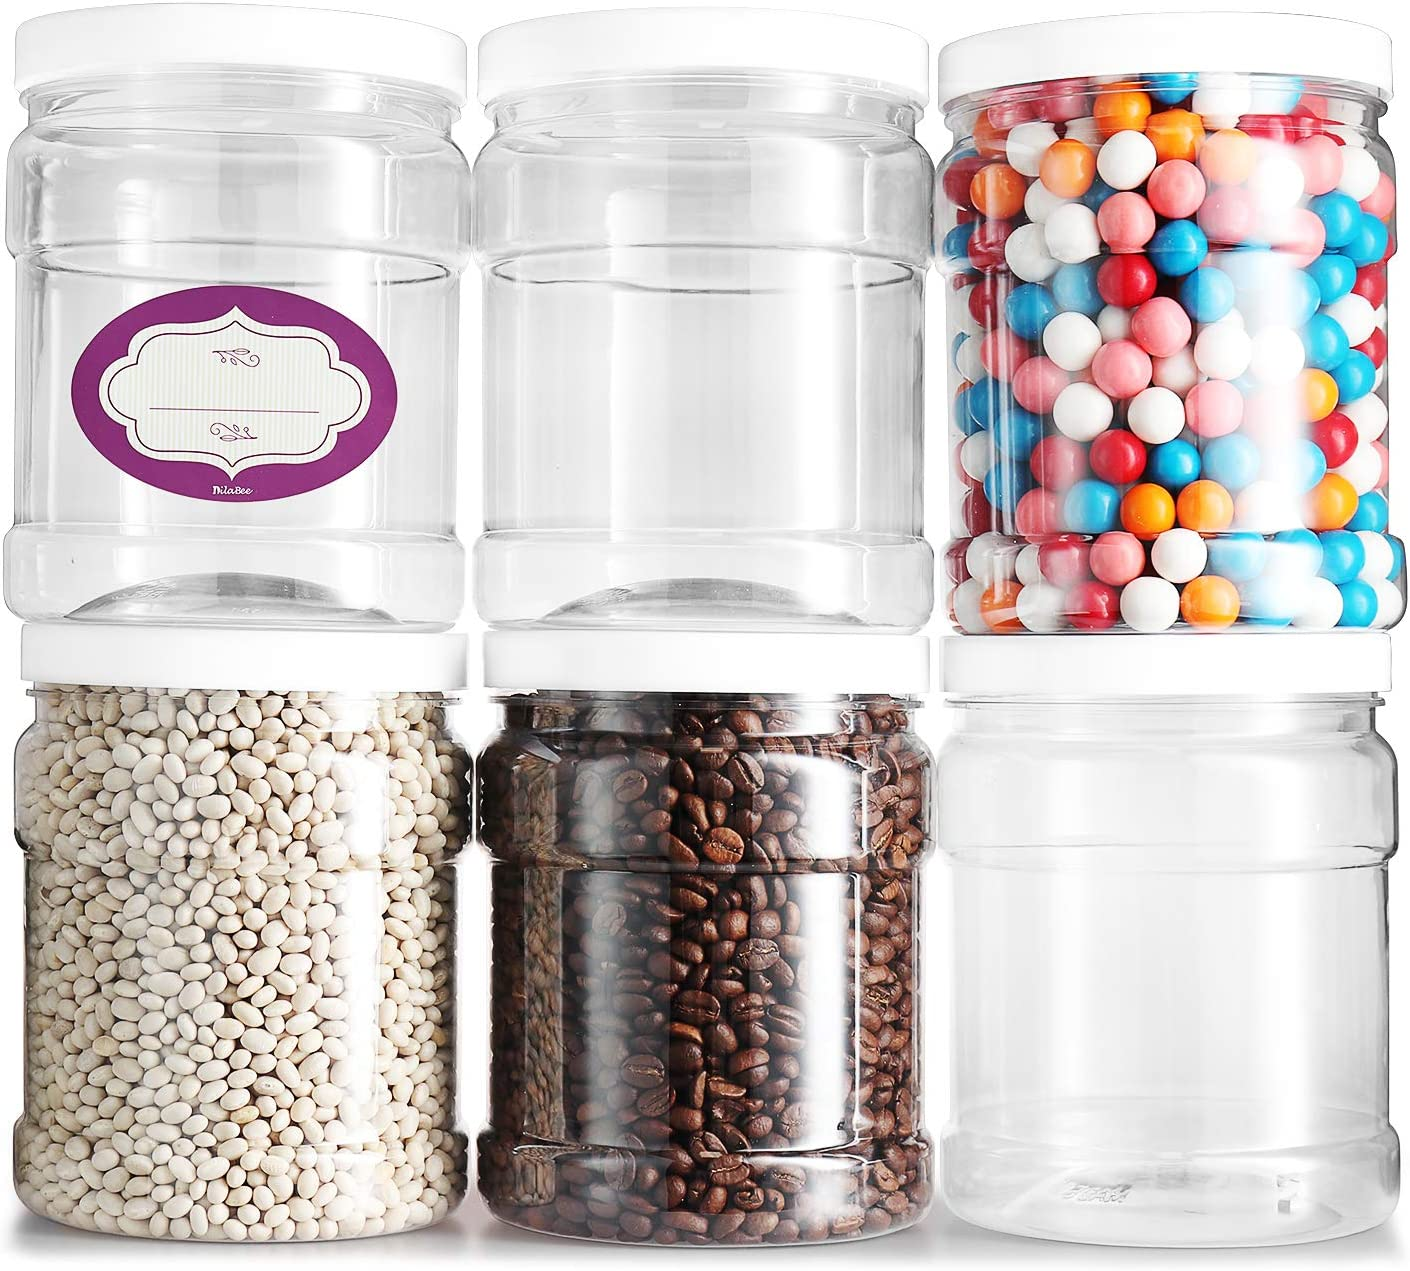 Pack of 6 - Clear Empty Plastic 48 Oz Storage containers with Lids - Round Pantry Containers - Clear Jars Come with Air Tight Lids and Labels – BPA Free Plastic Jar - Paint Storage Containers